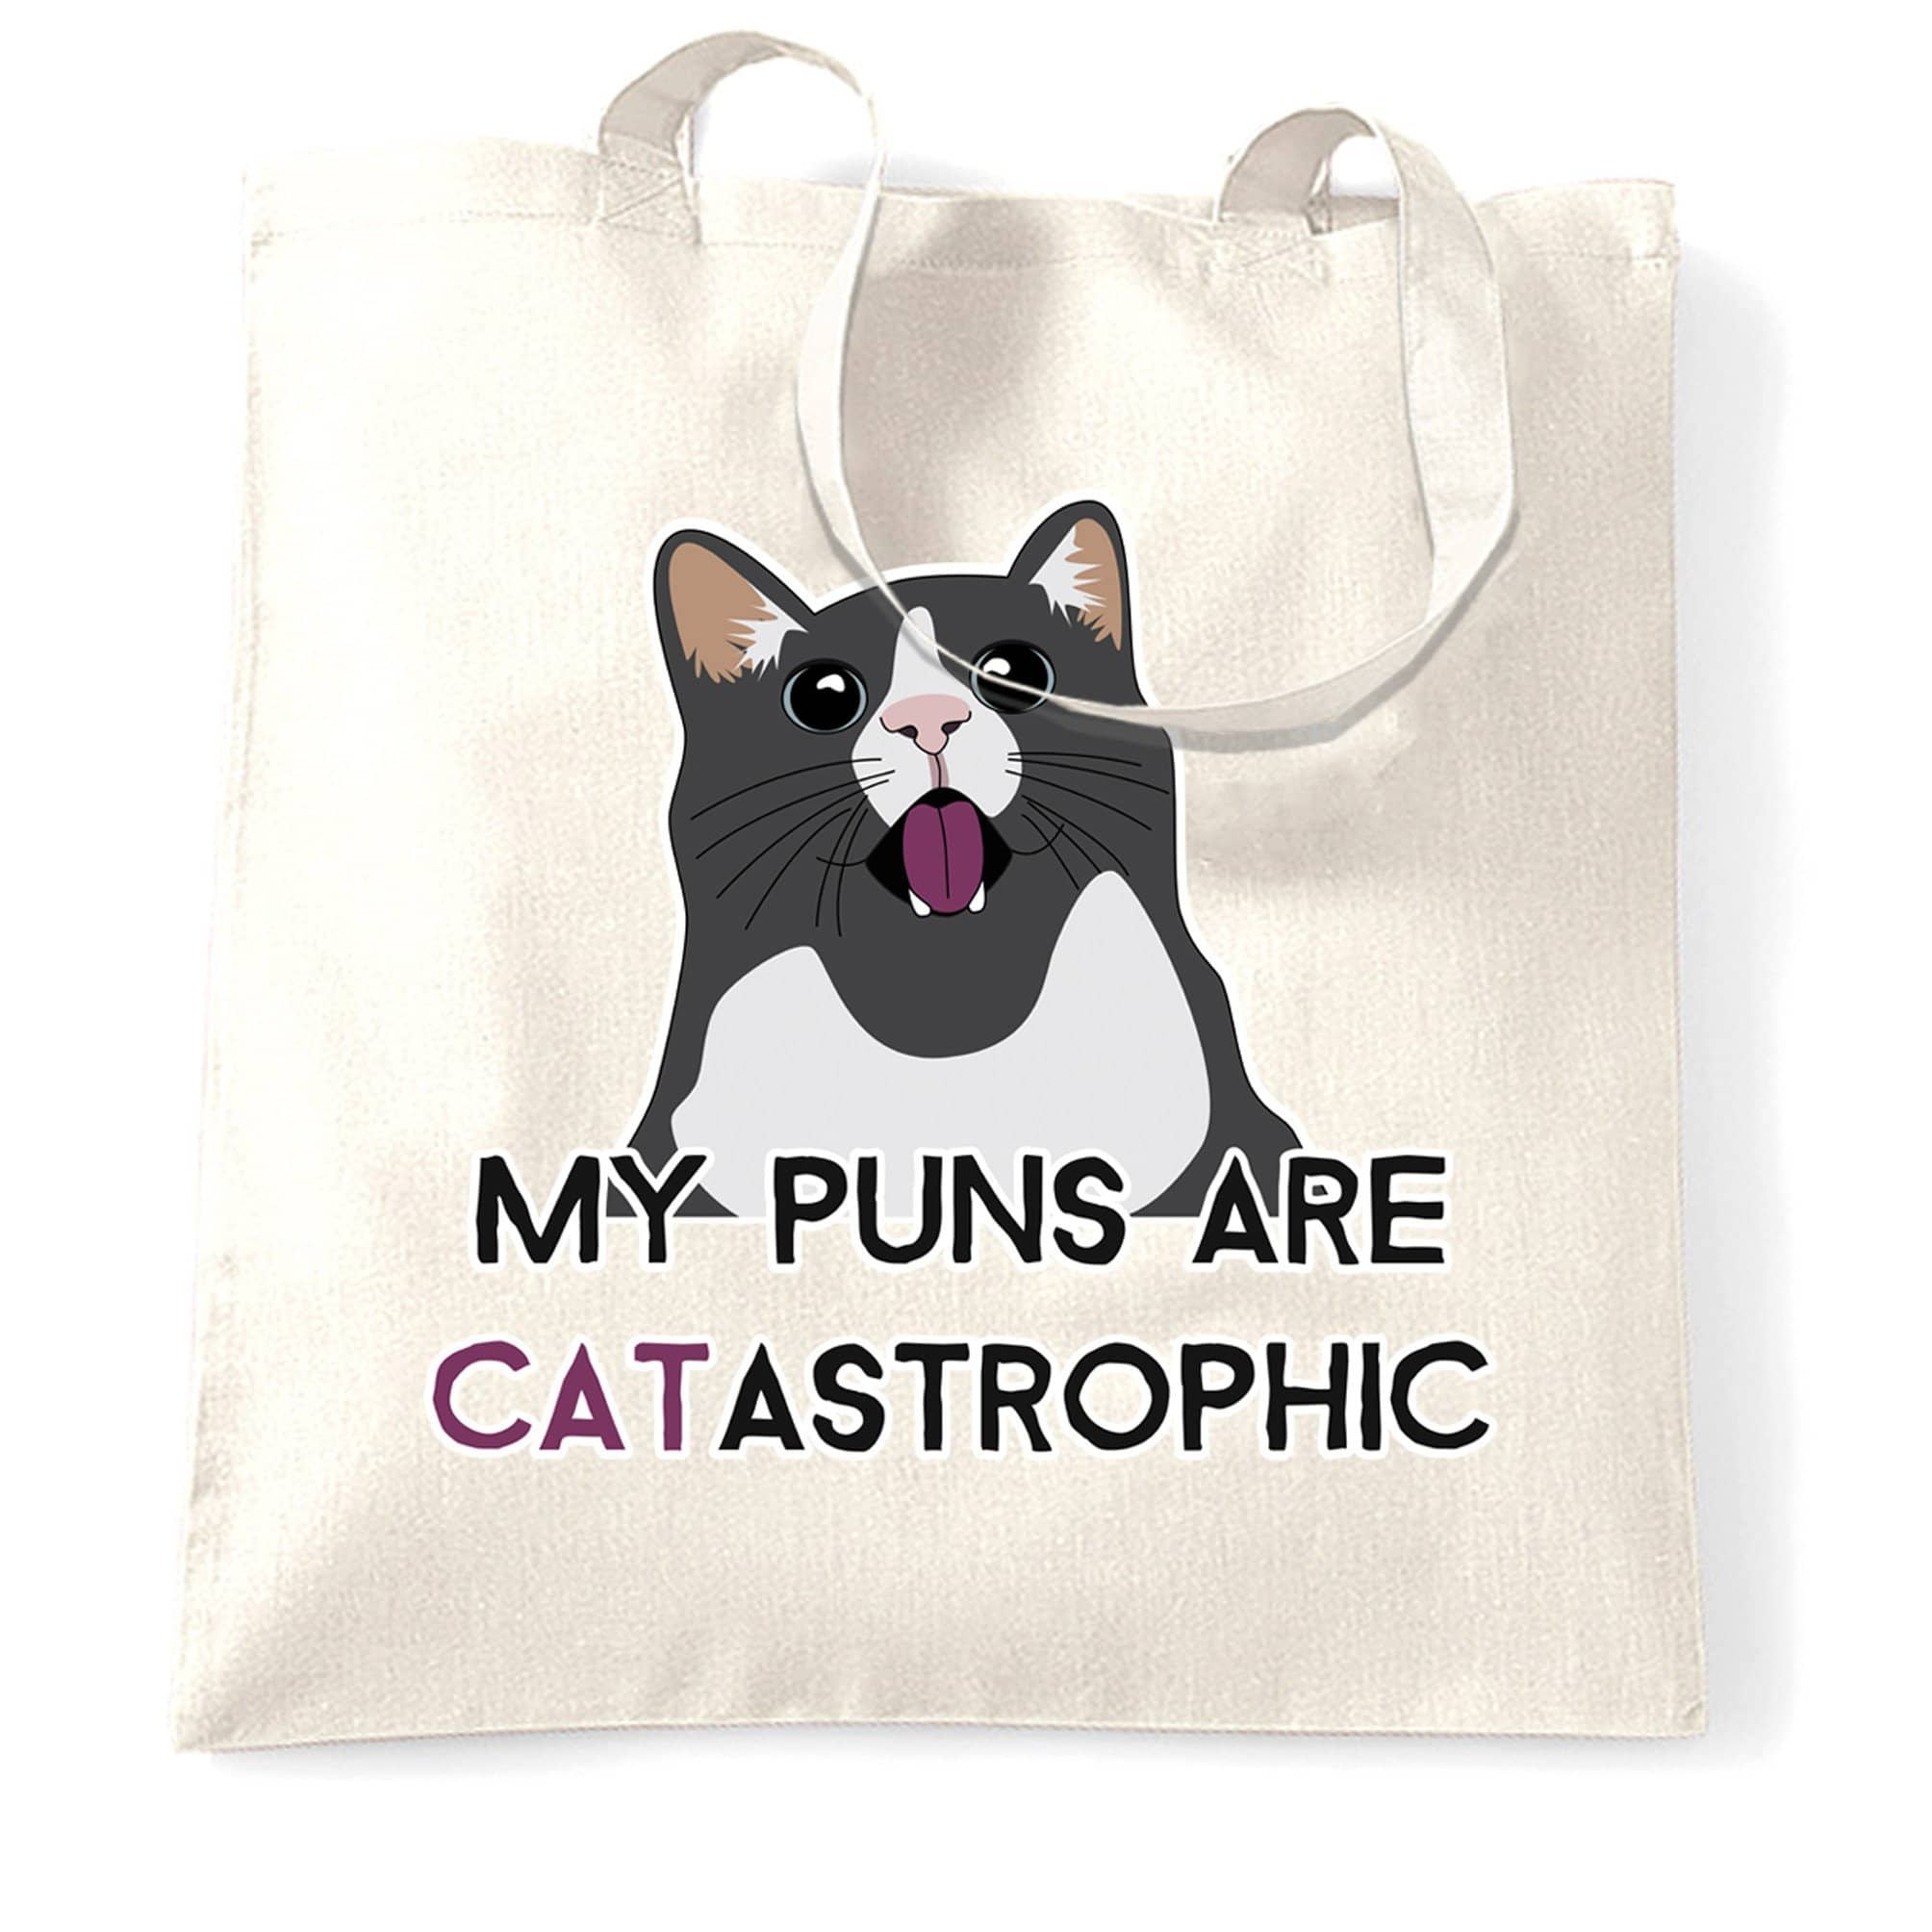 Novelty Cat Tote Bag My Puns Are Catastrophic Joke